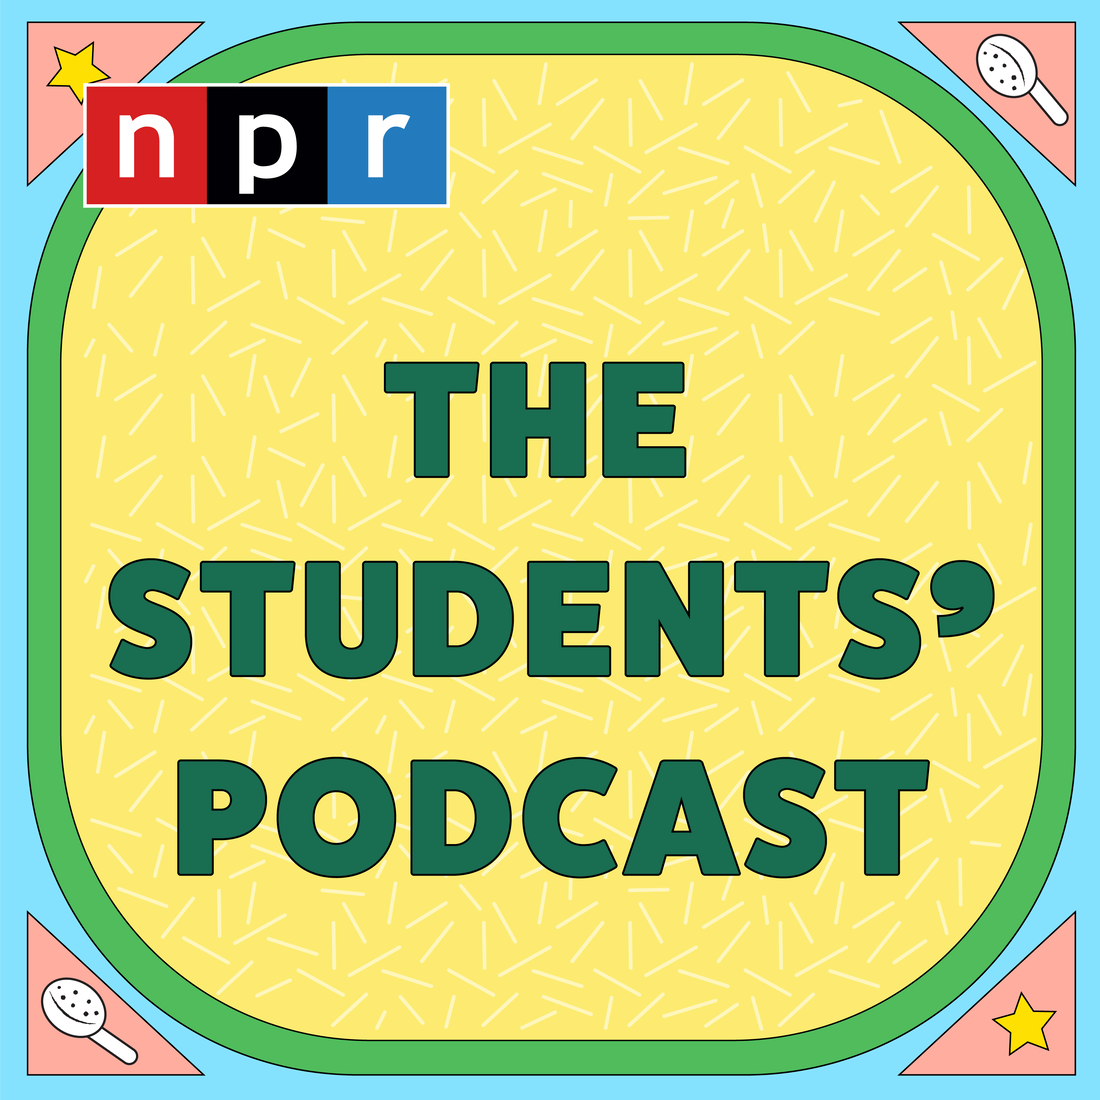 The Students' Podcast logo